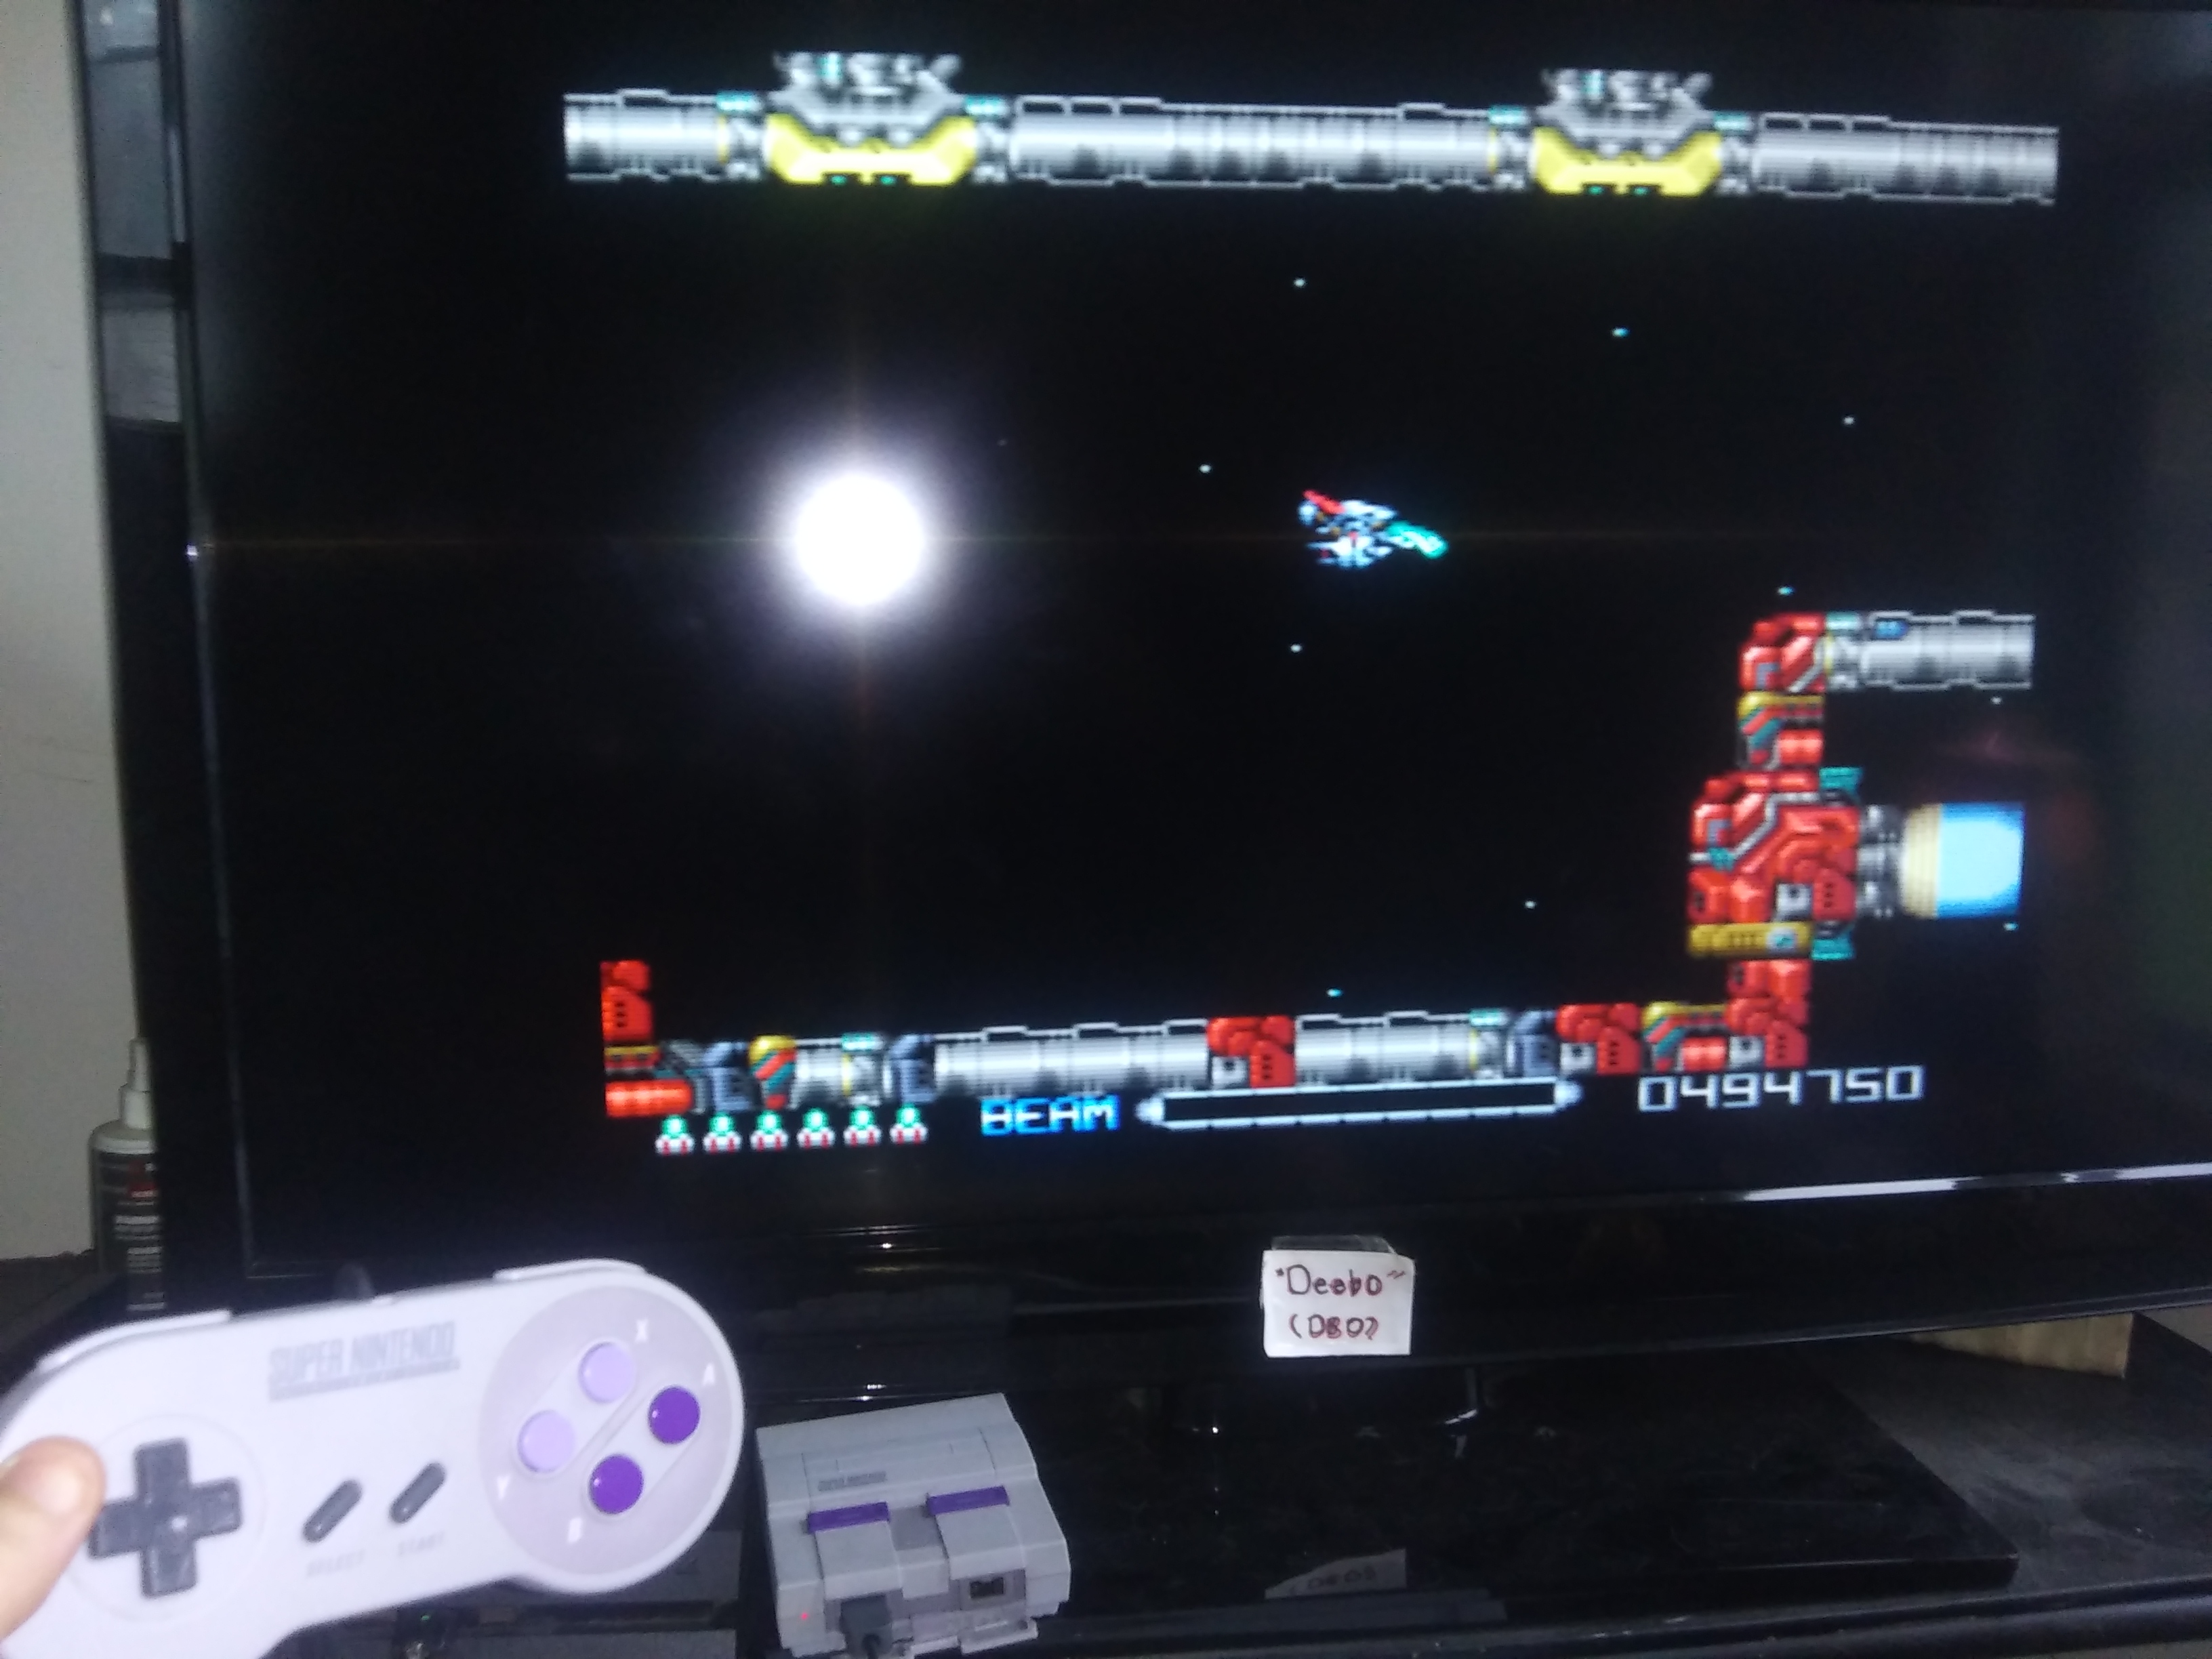 Deebo: R-Type III (SNES/Super Famicom Emulated) 494,750 points on 2019-07-16 18:25:11